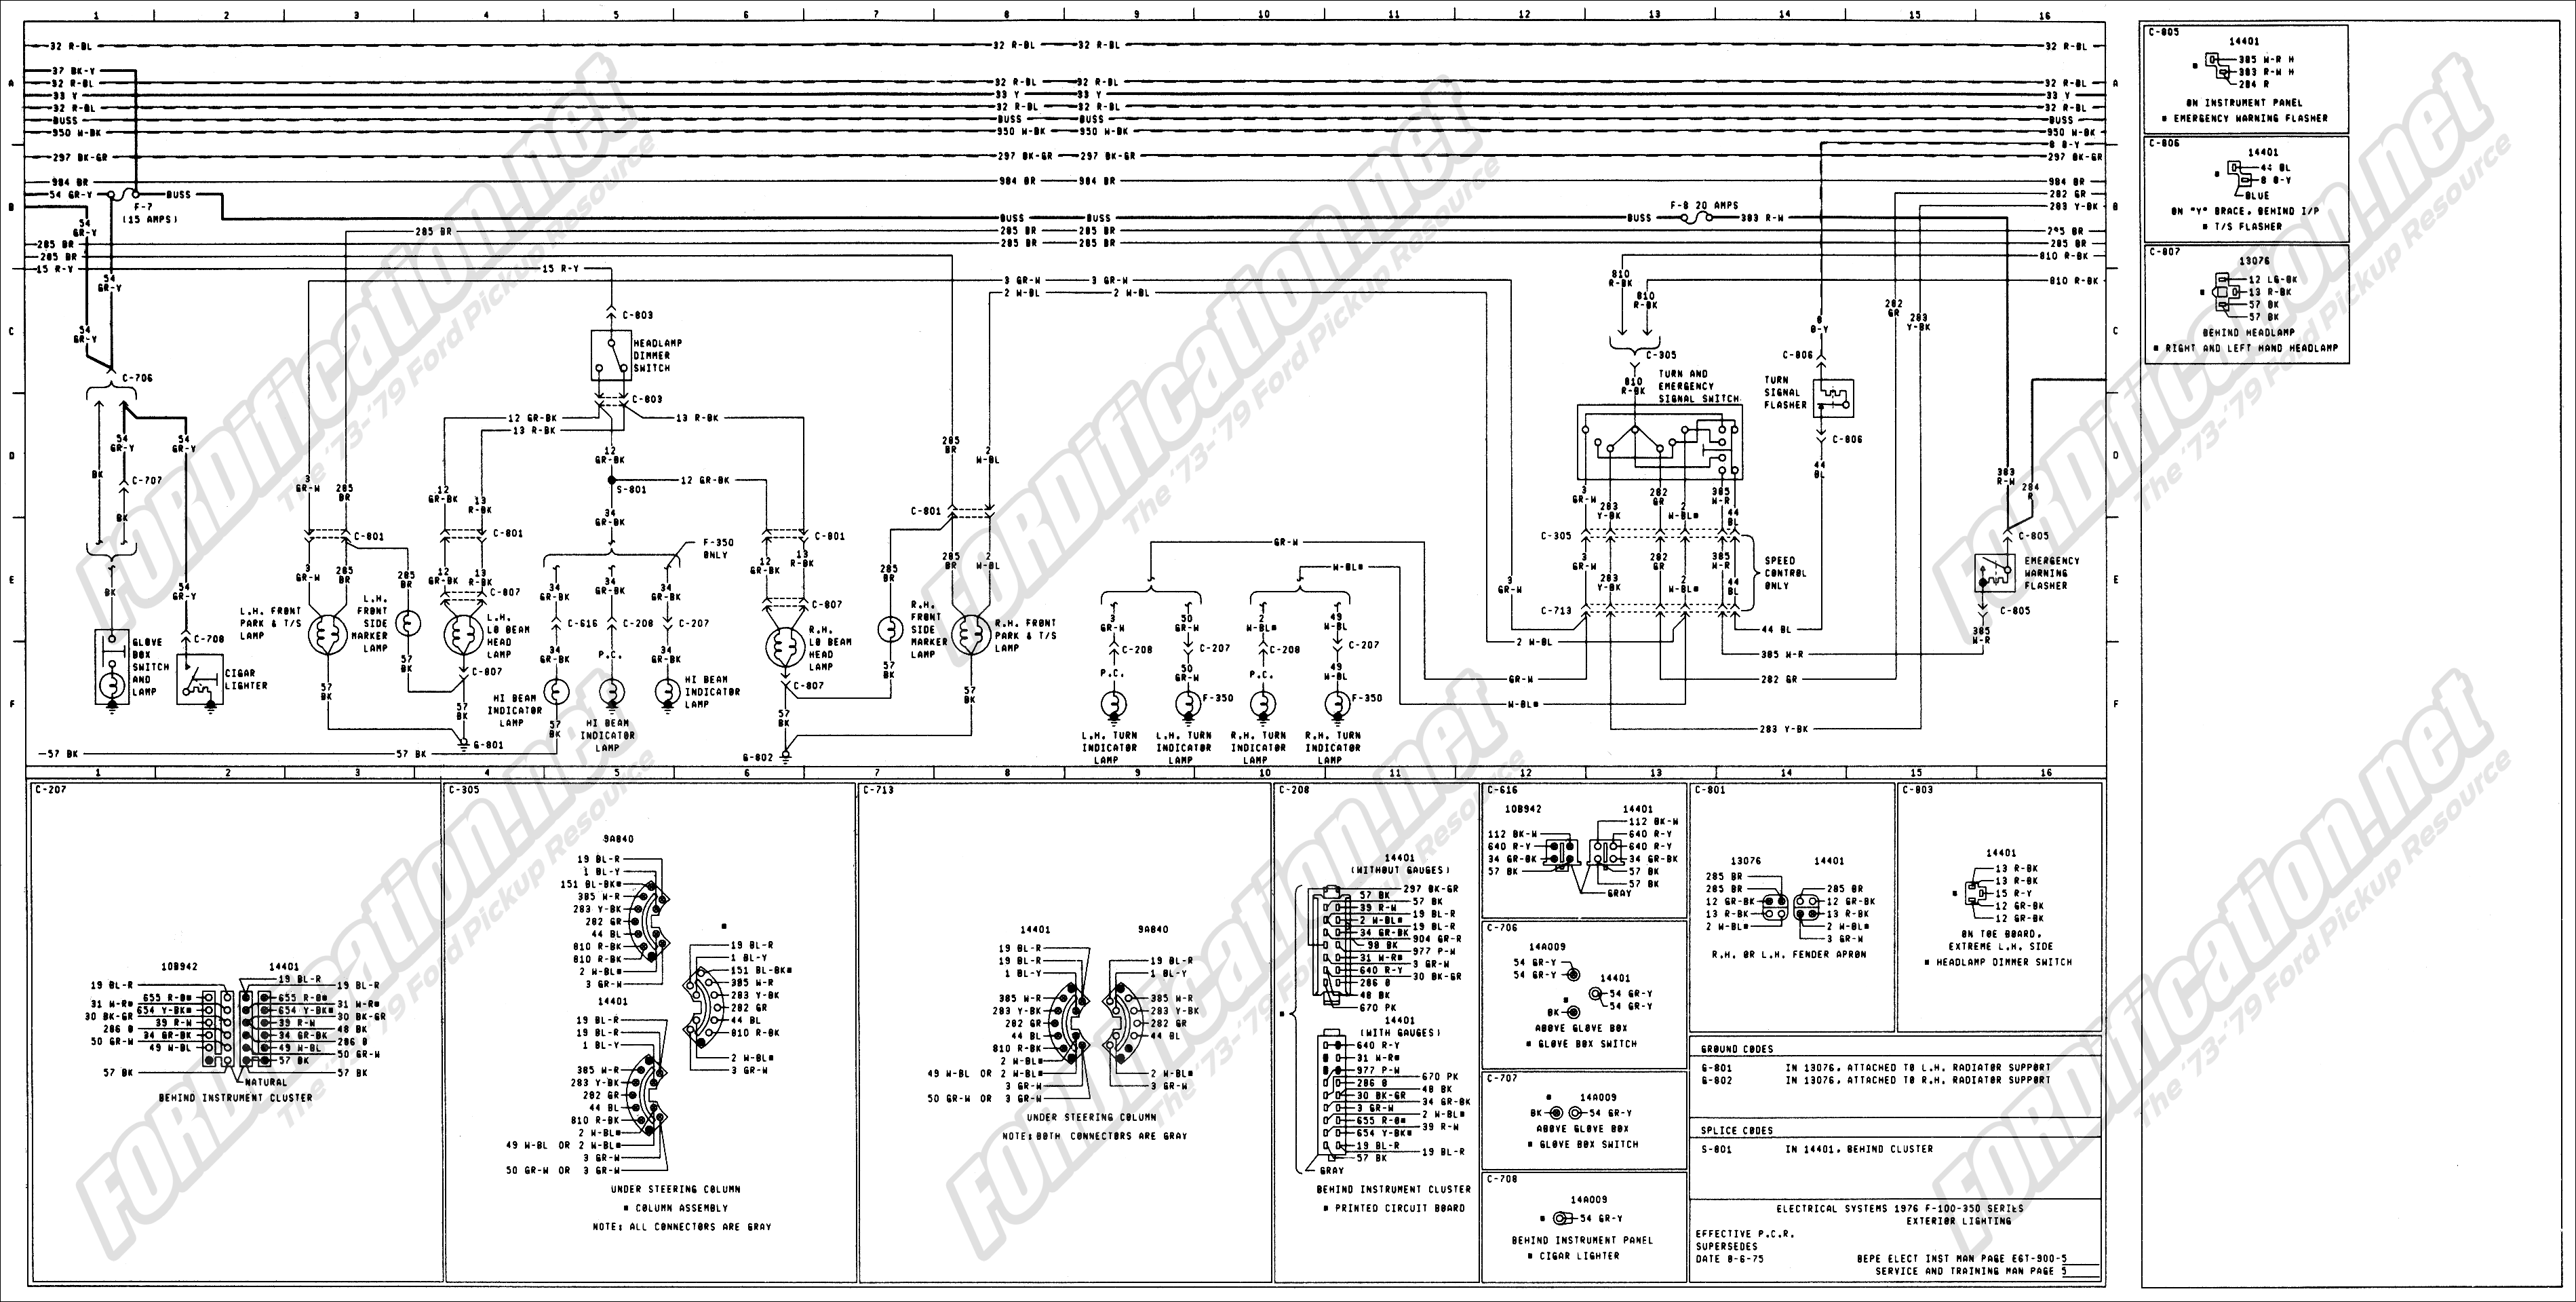 98 F150 Blinker Wiring Diy Enthusiasts Diagrams F150 Wiring Diagram 1973 1979 Ford Truck Schematics Fordification Net Rh F250